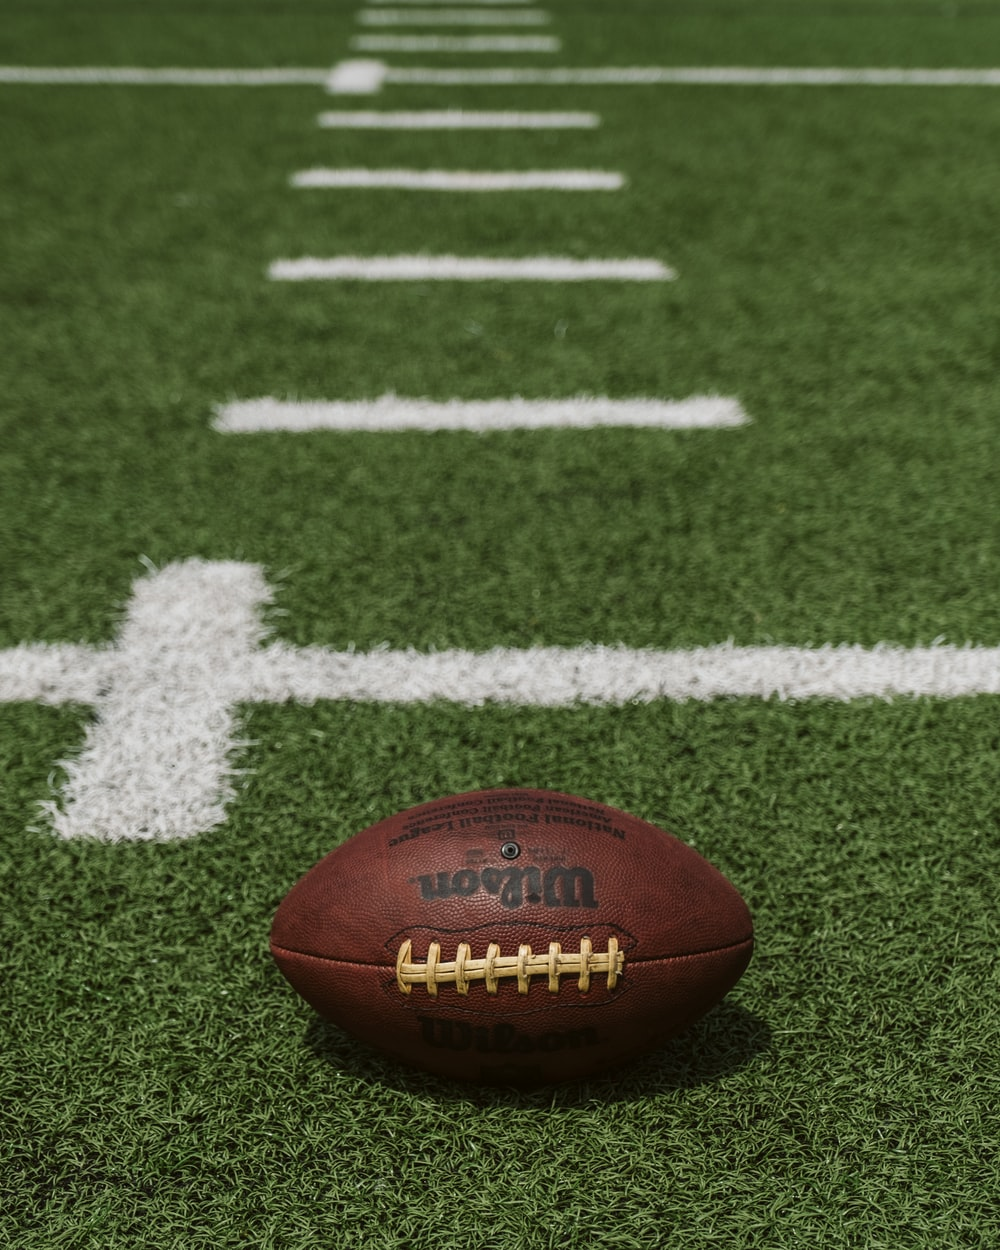 100 Football Field Pictures Download Free Images On Unsplash